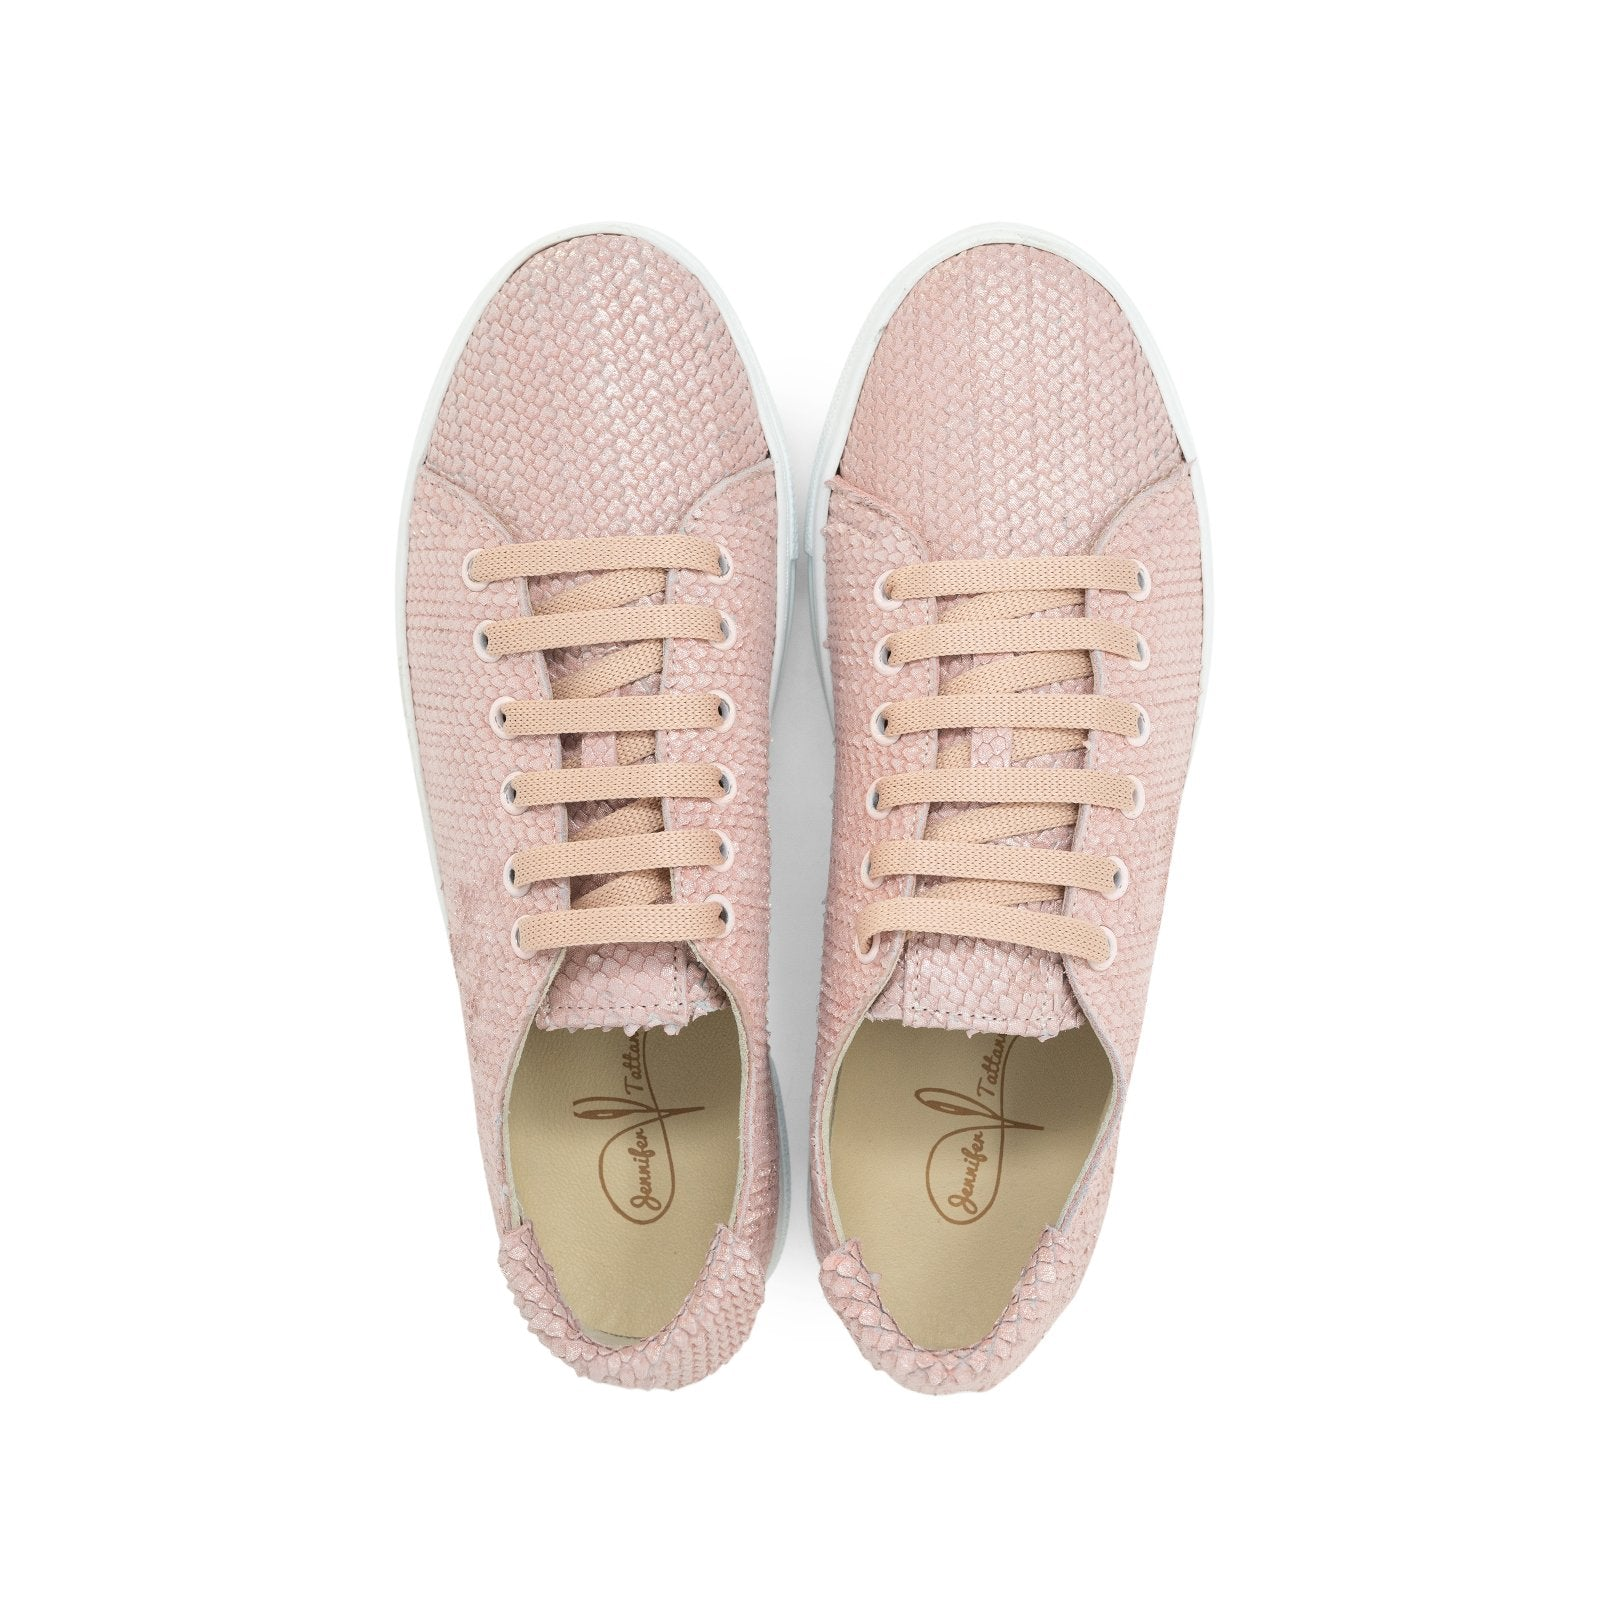 Women Sneakers - New Spring Summer 2020 Collection RINTL9060